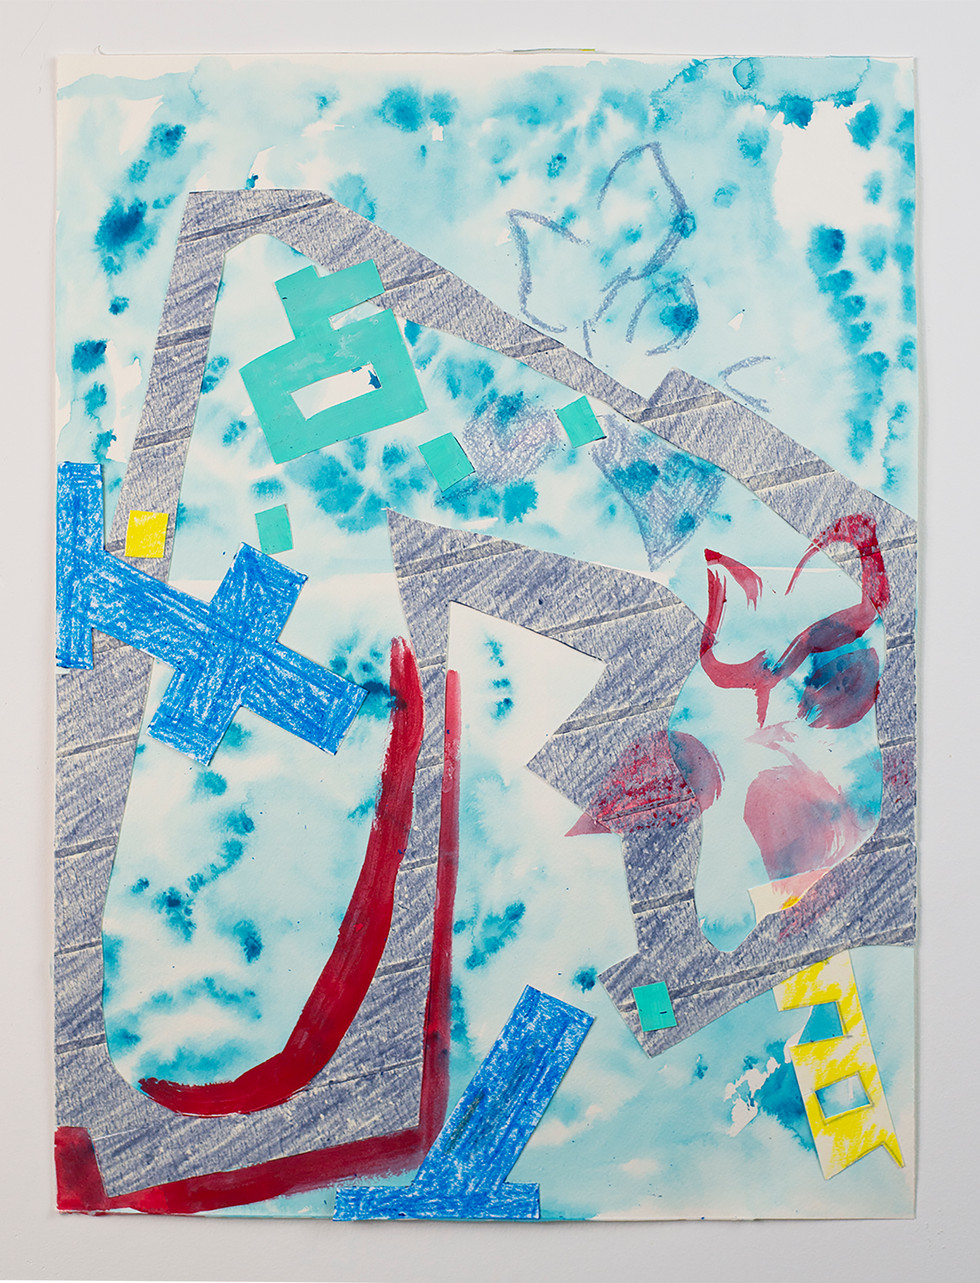 Watercolor, crayons, acrylic gouache, masking tape, paper collage on watercolor paper.